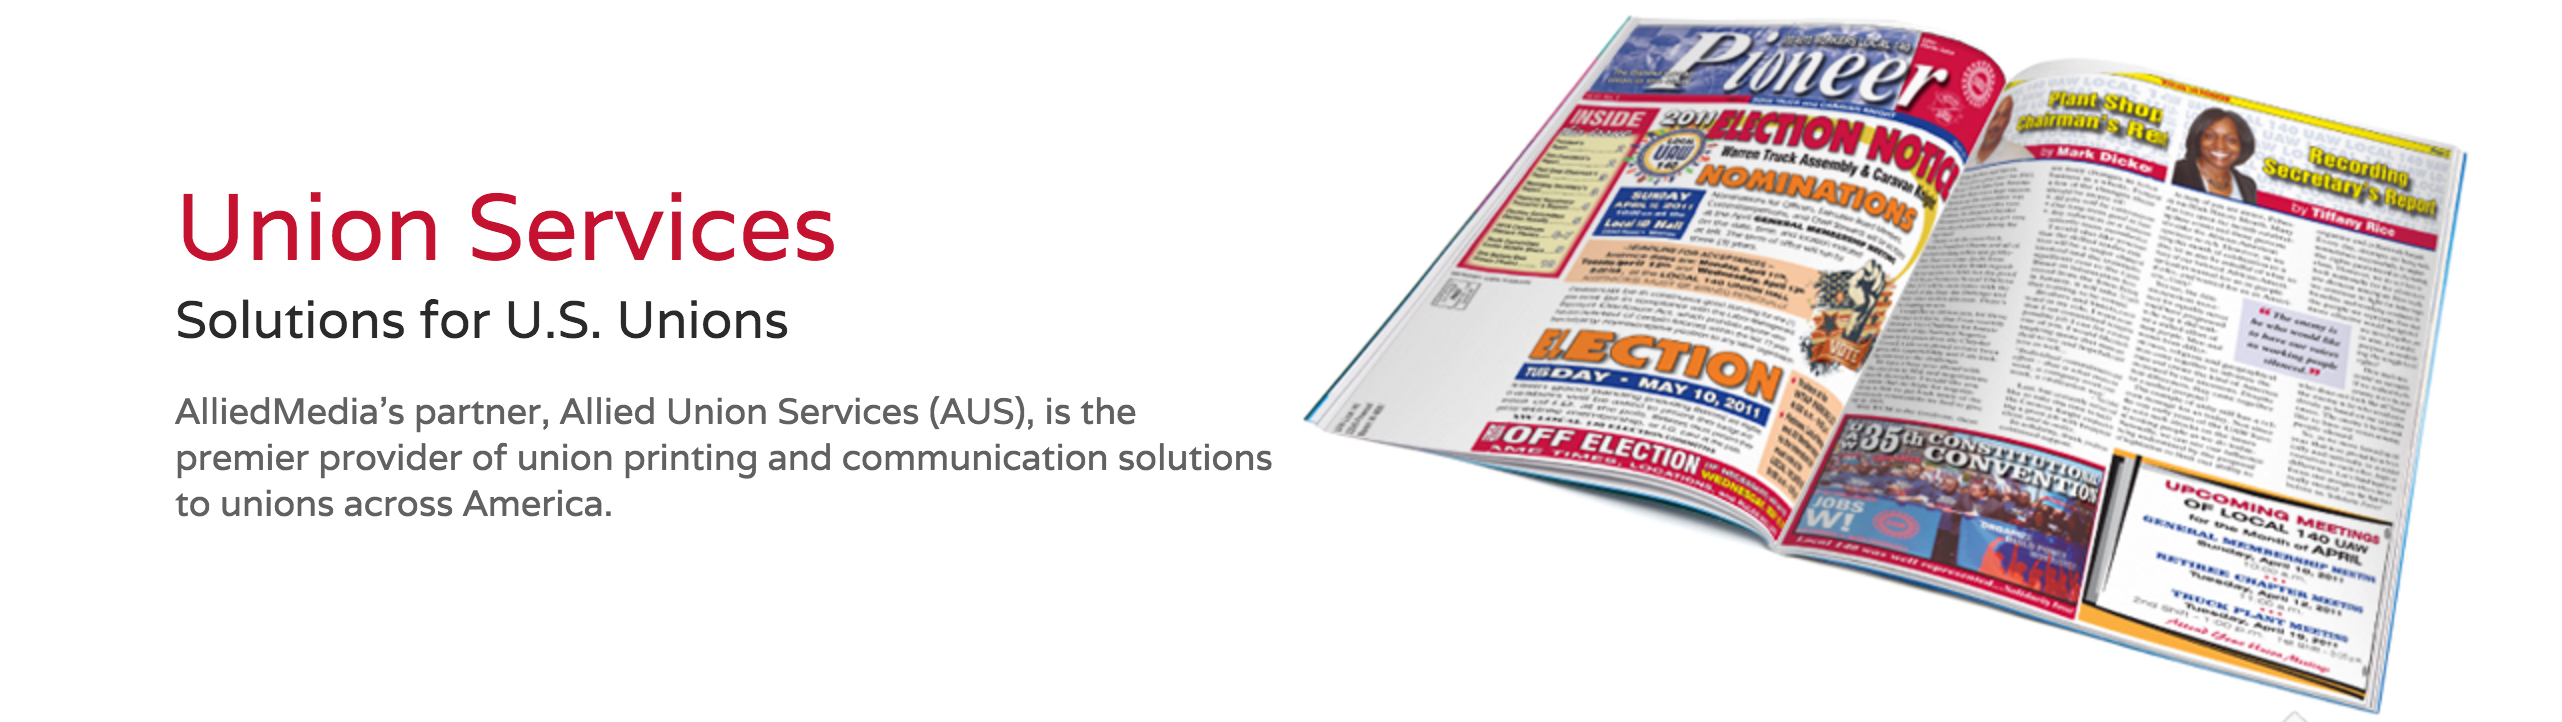 Allied Union Services is our union print provider